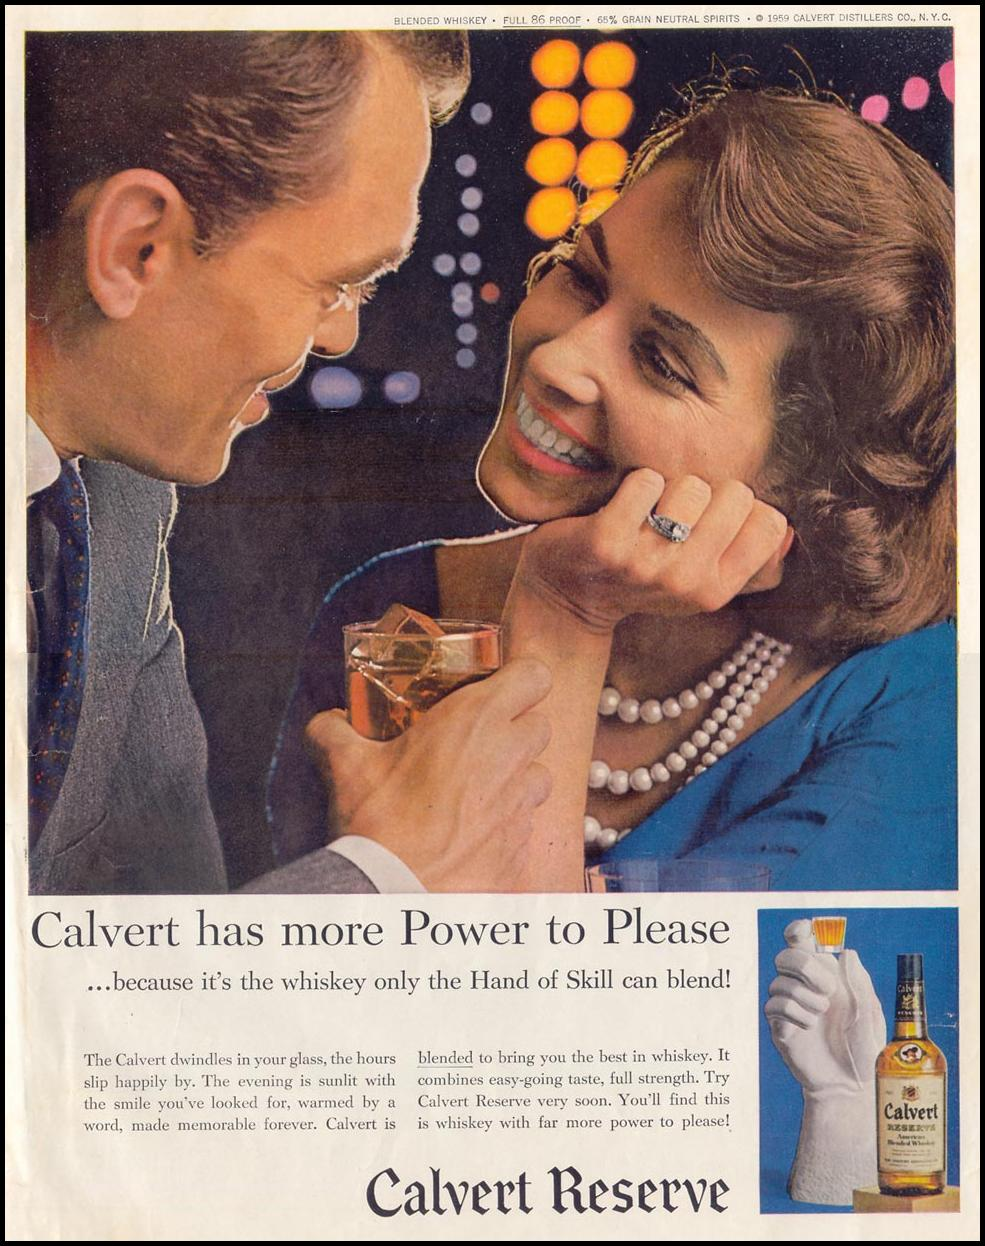 CALVERT RESERVE BLENDED WHISKEY SATURDAY EVENING POST 08/15/1959 INSIDE BACK